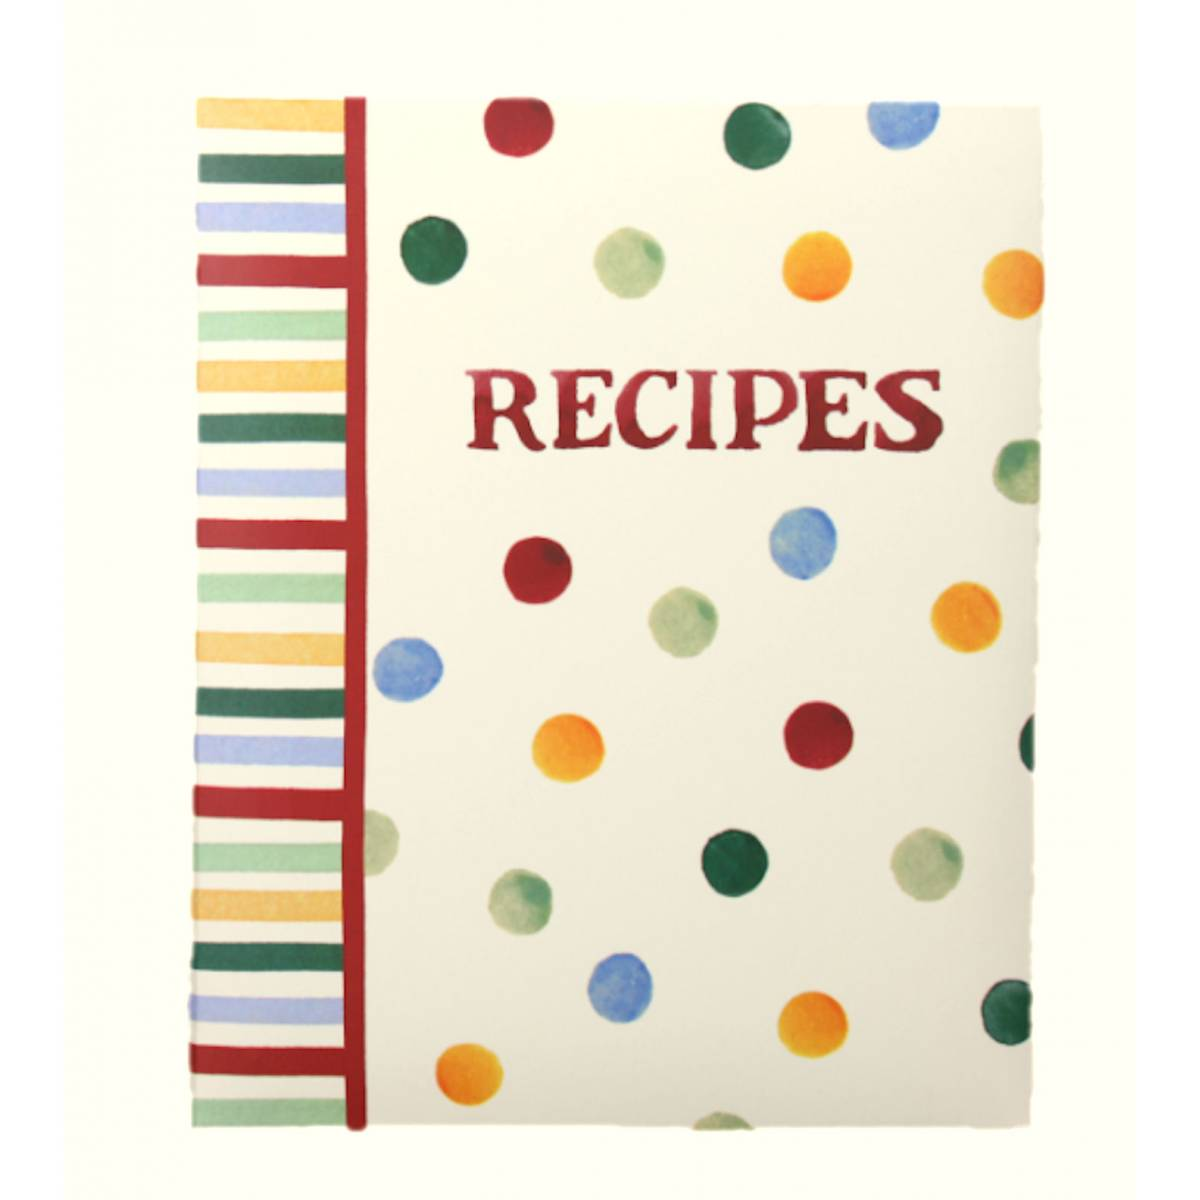 Choice clipart recipe Clip on Art Book Clip